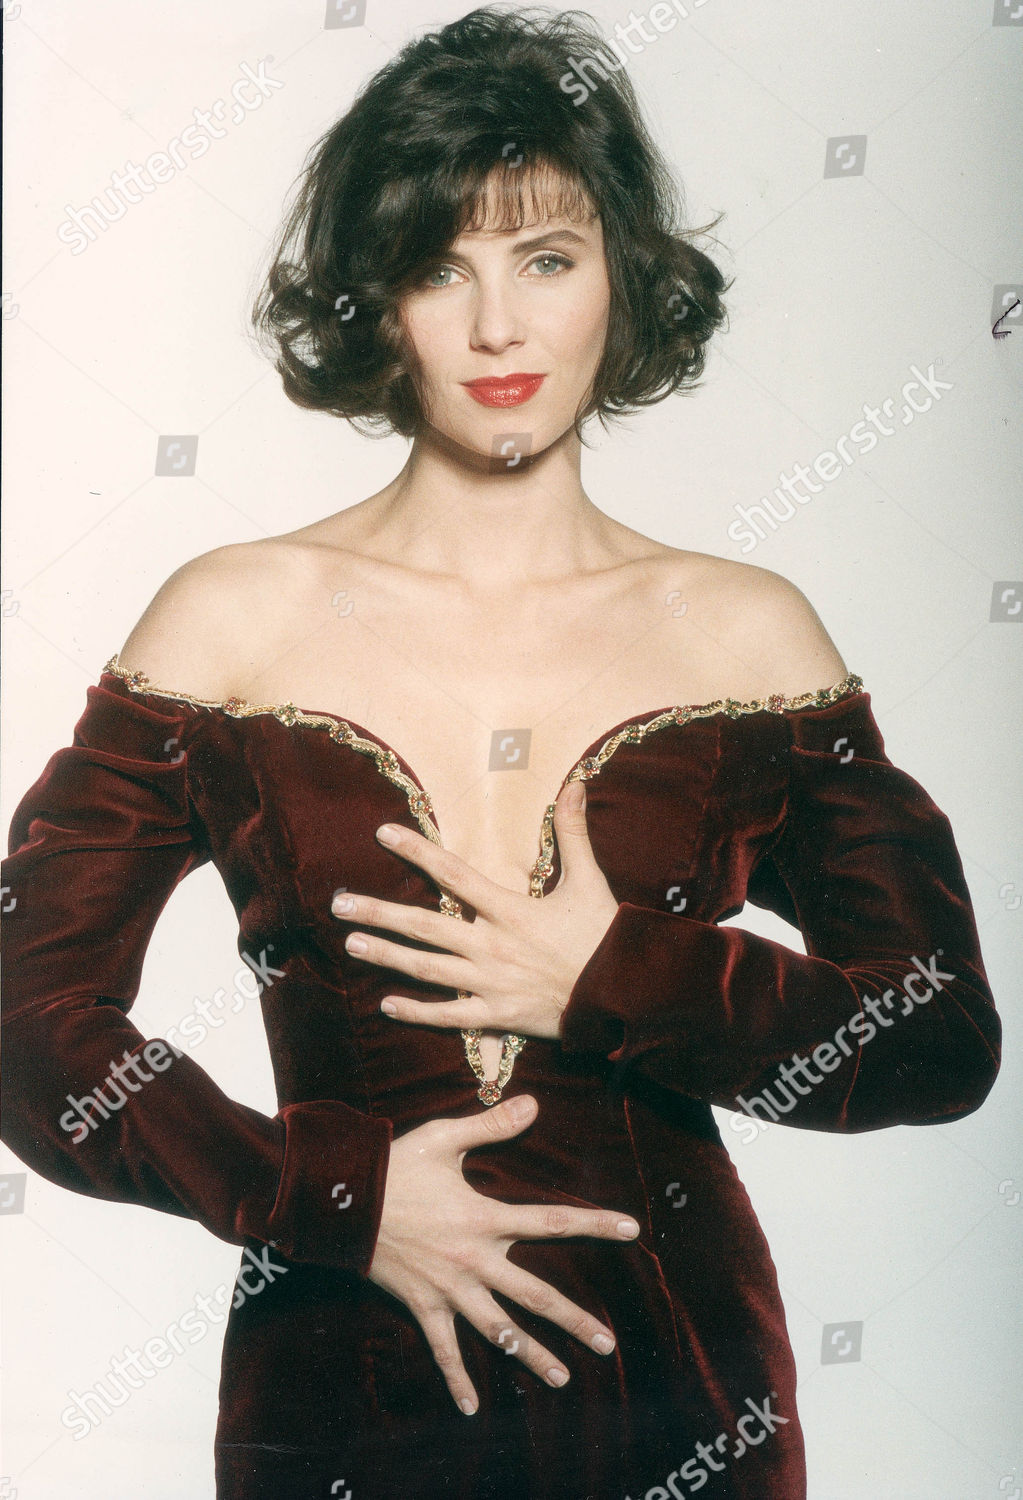 Actress Sadie Frost Who Is Married To Actor Jude Law Assignment Dracula